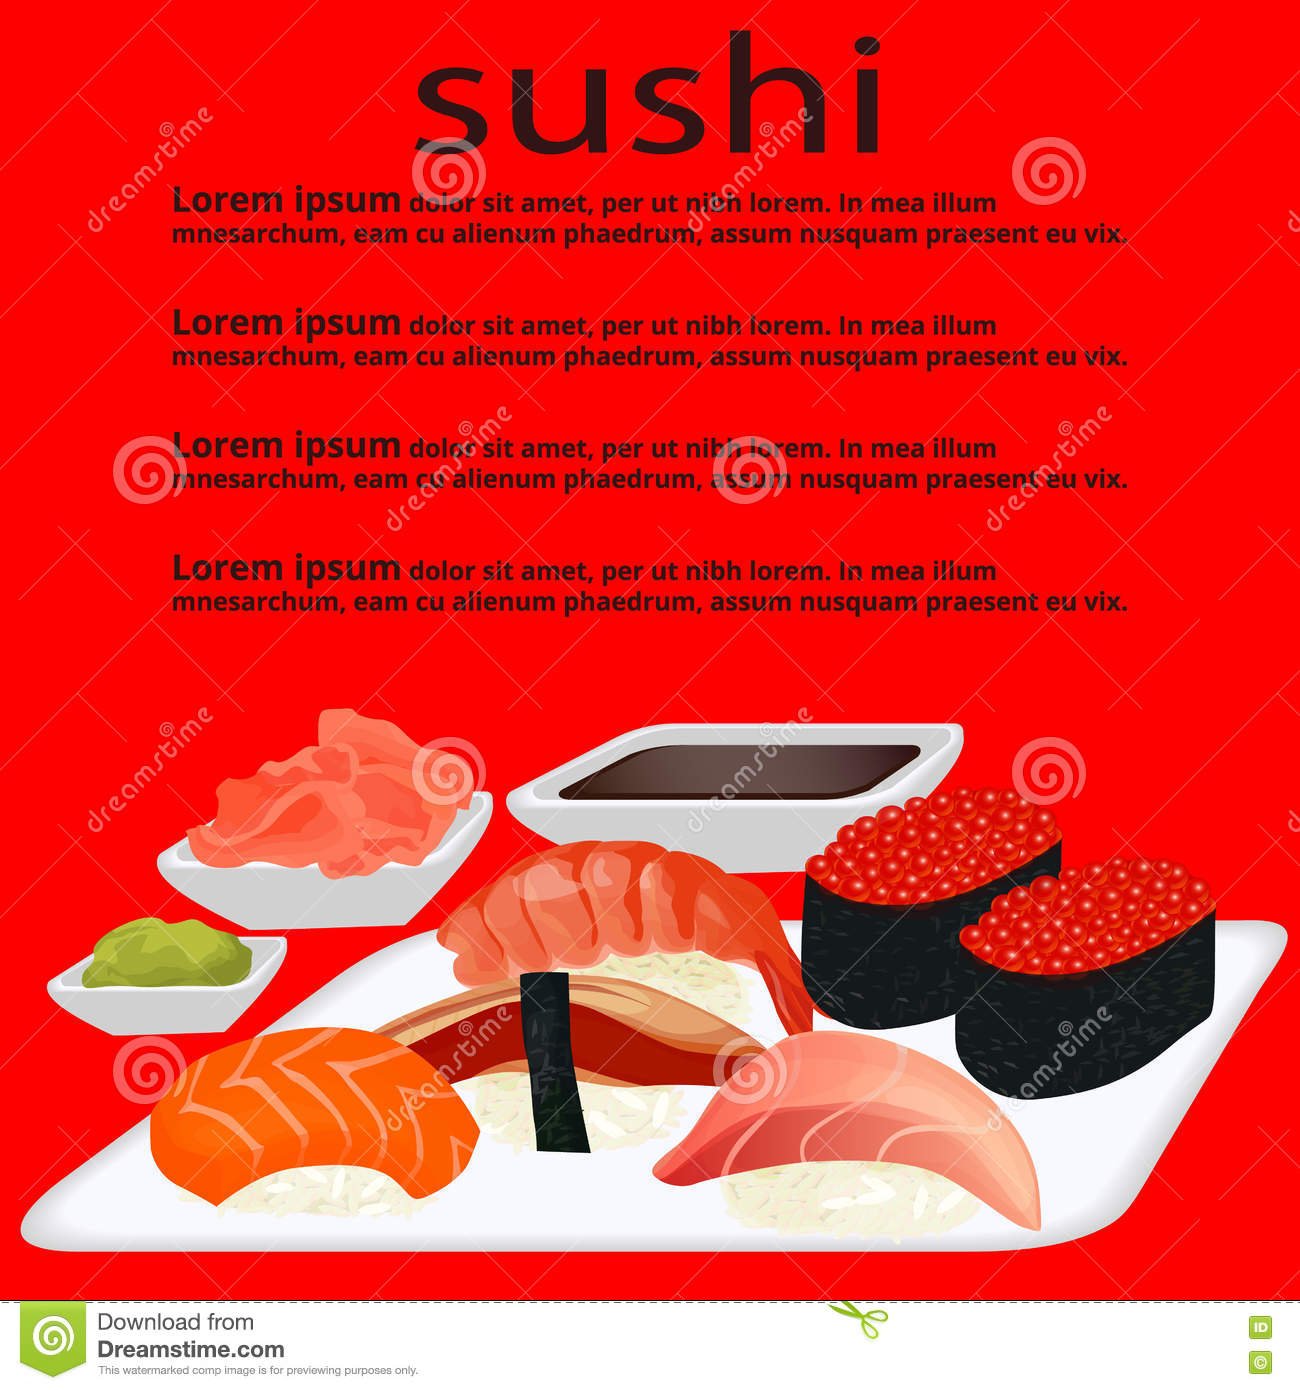 Menu sushi on the red background